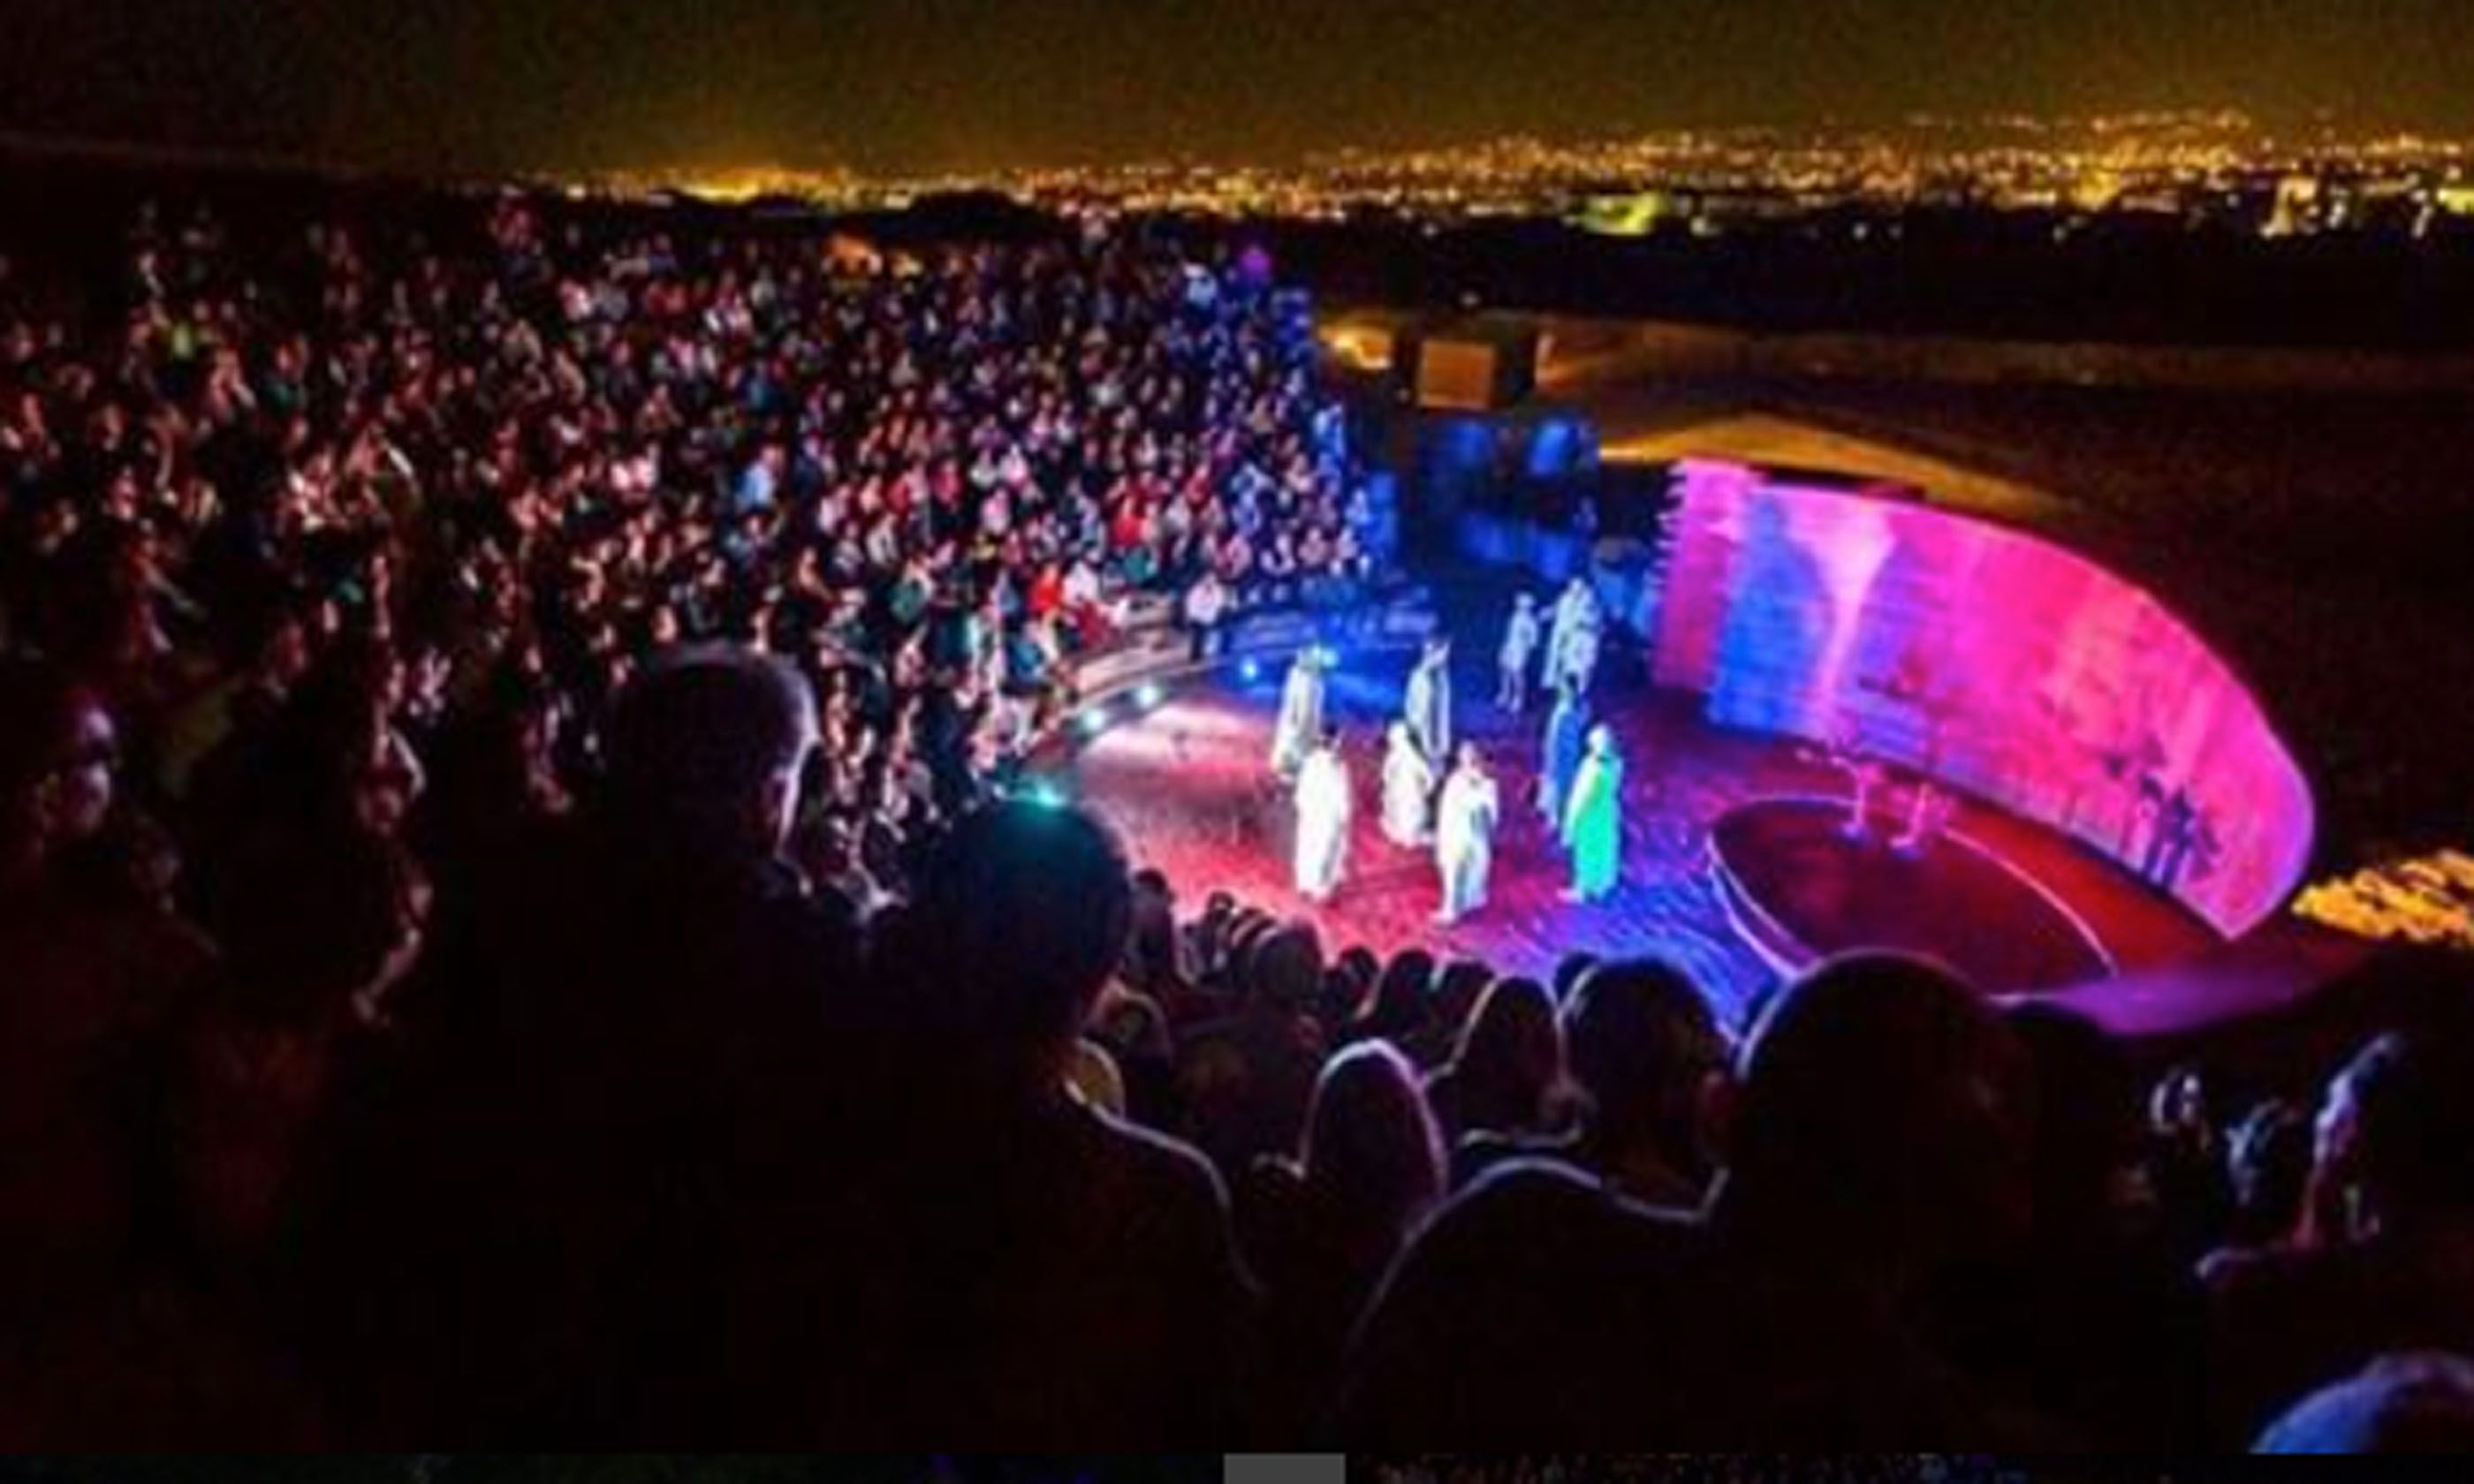 Outdoor theatre (pafos2017.eu)